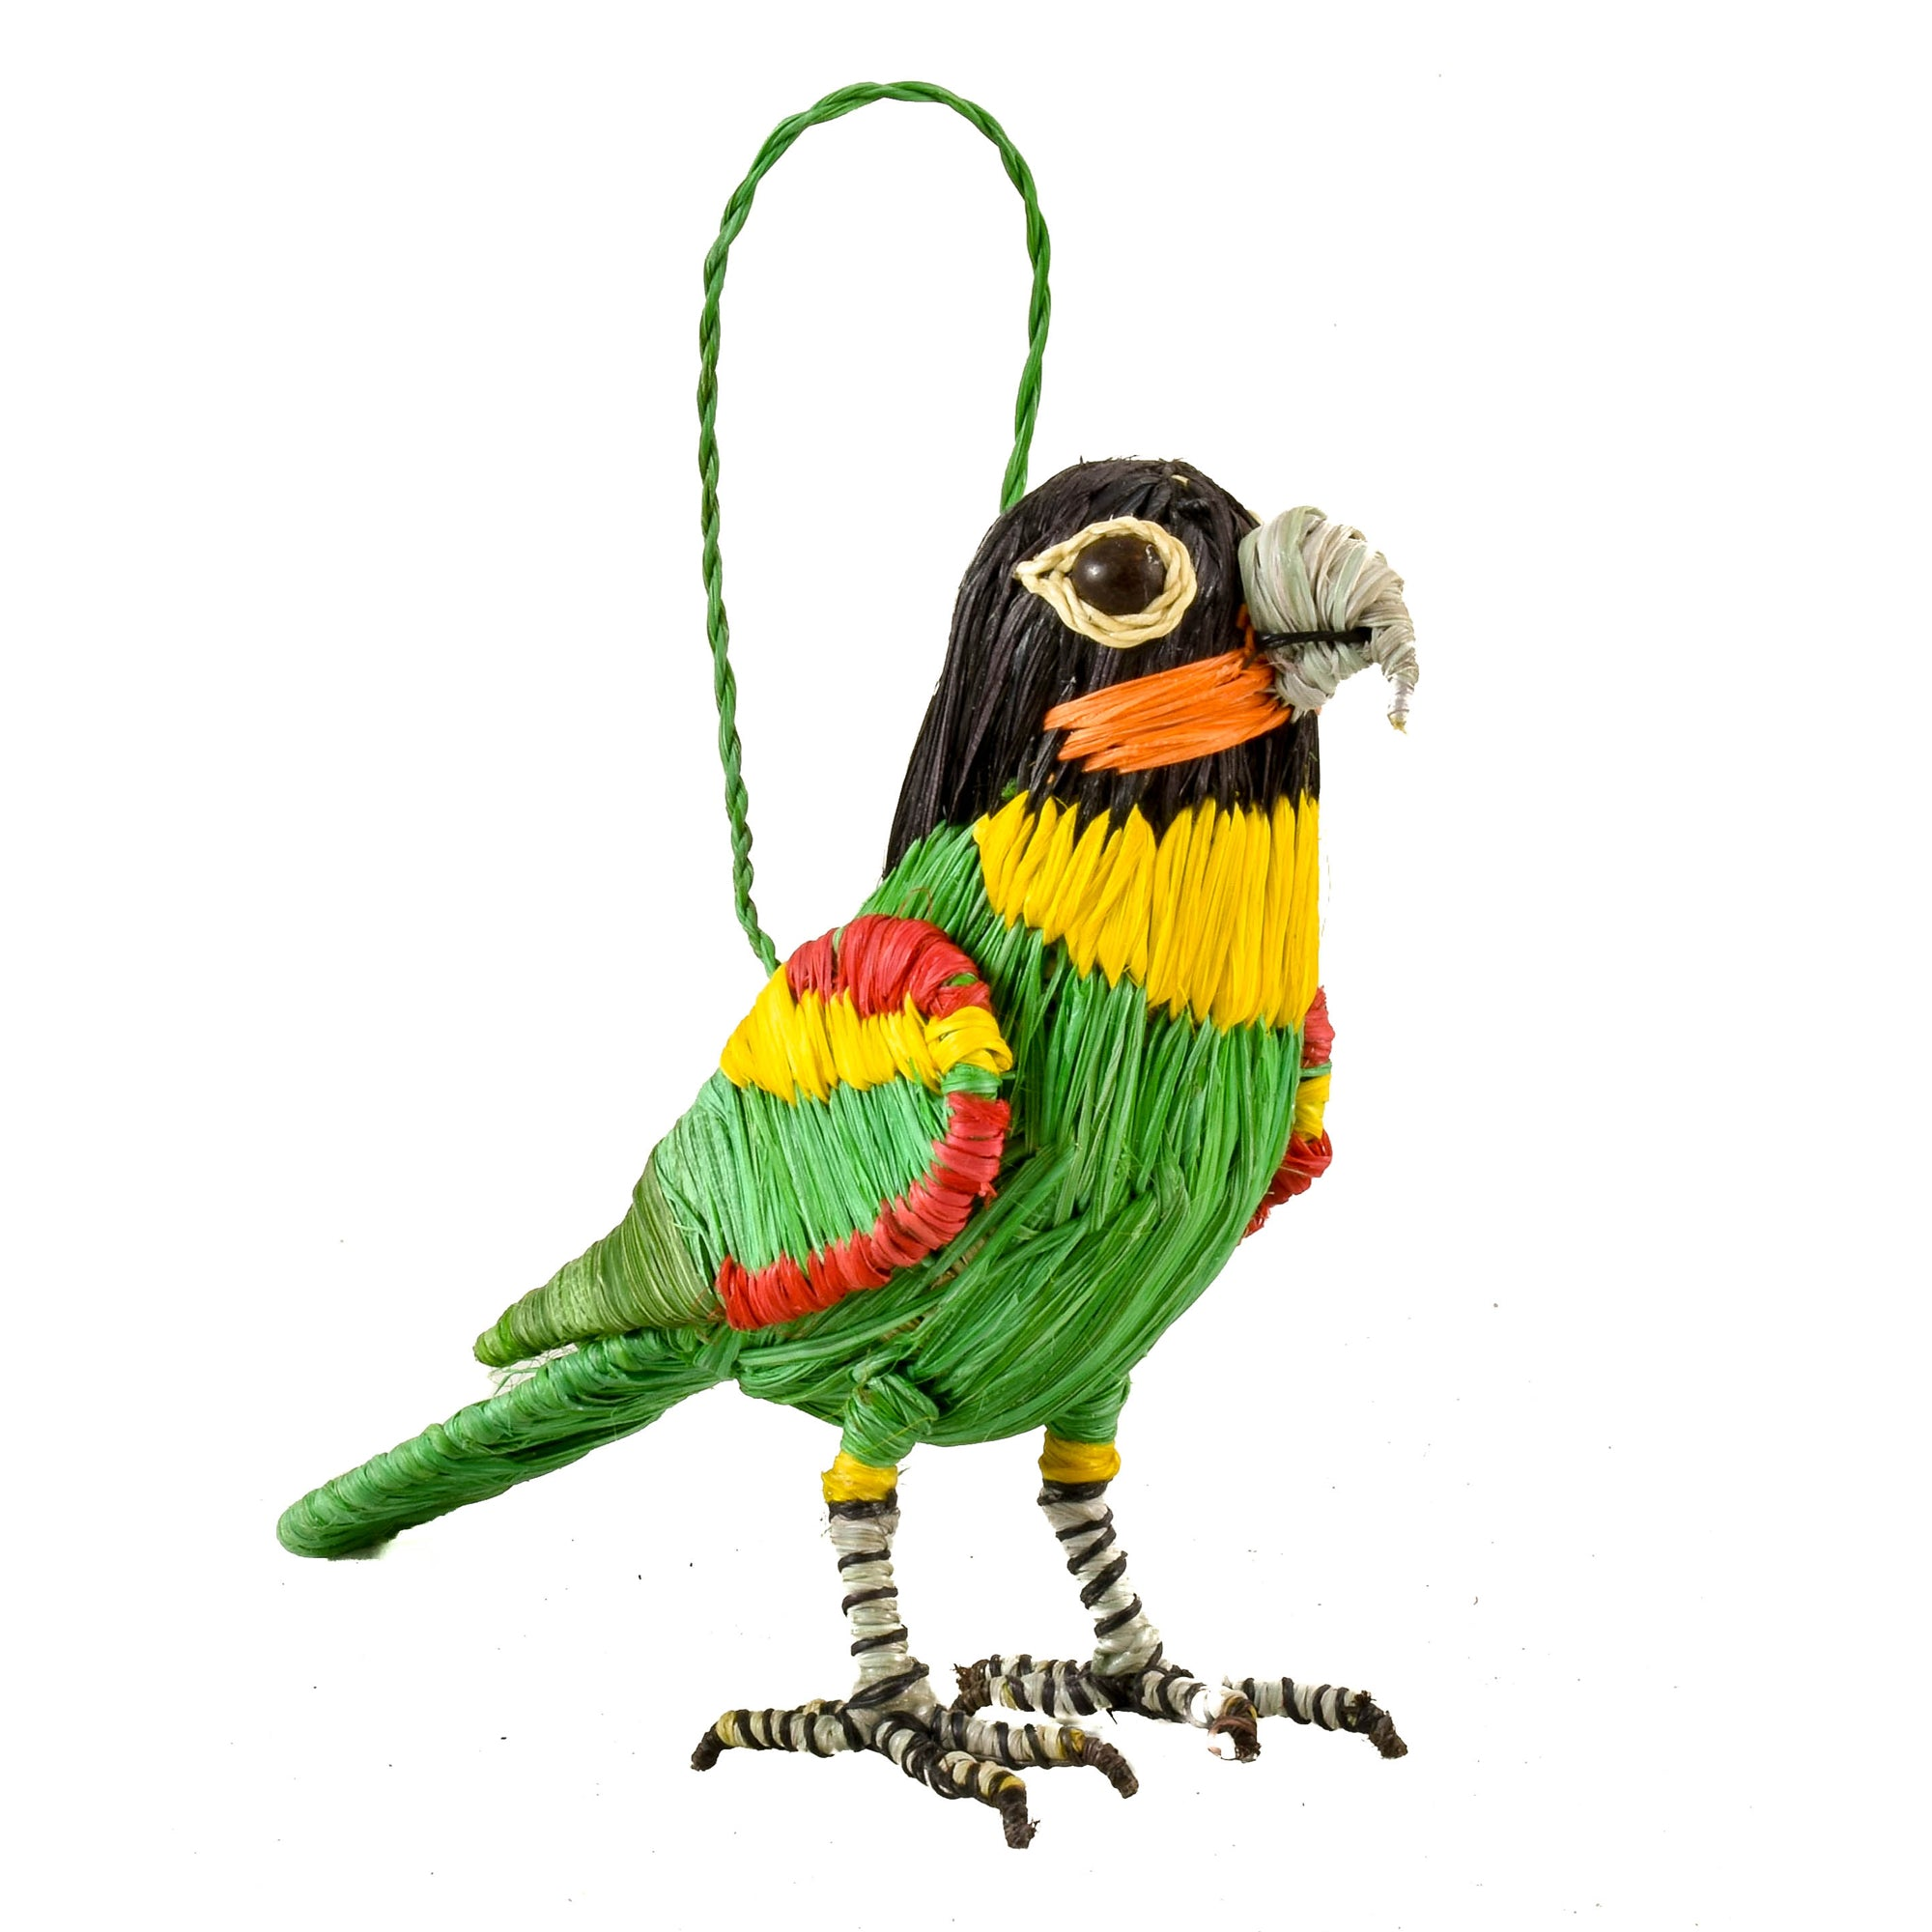 ORANGE CHEEKED PARROT BIRD - FAIR-TRADE CHRISTMAS TREE ORNAMENT - WOVEN BY PERUVIAN AMAZON ARTISAN